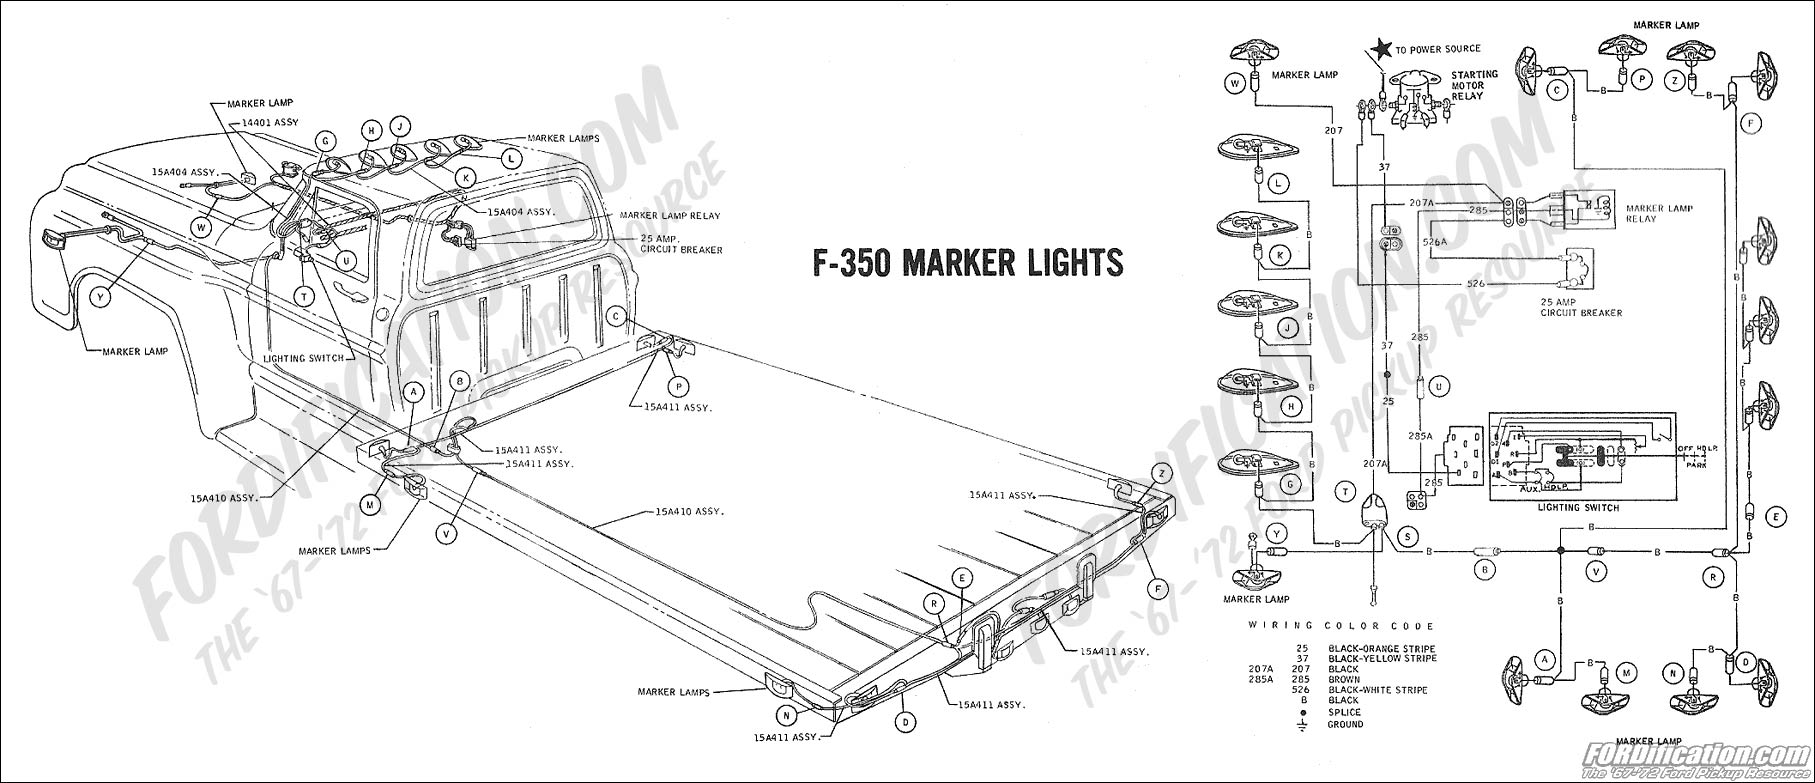 Ford truck technical drawings and schematics section h wiring 1969 f 350 marker lights cheapraybanclubmaster Gallery